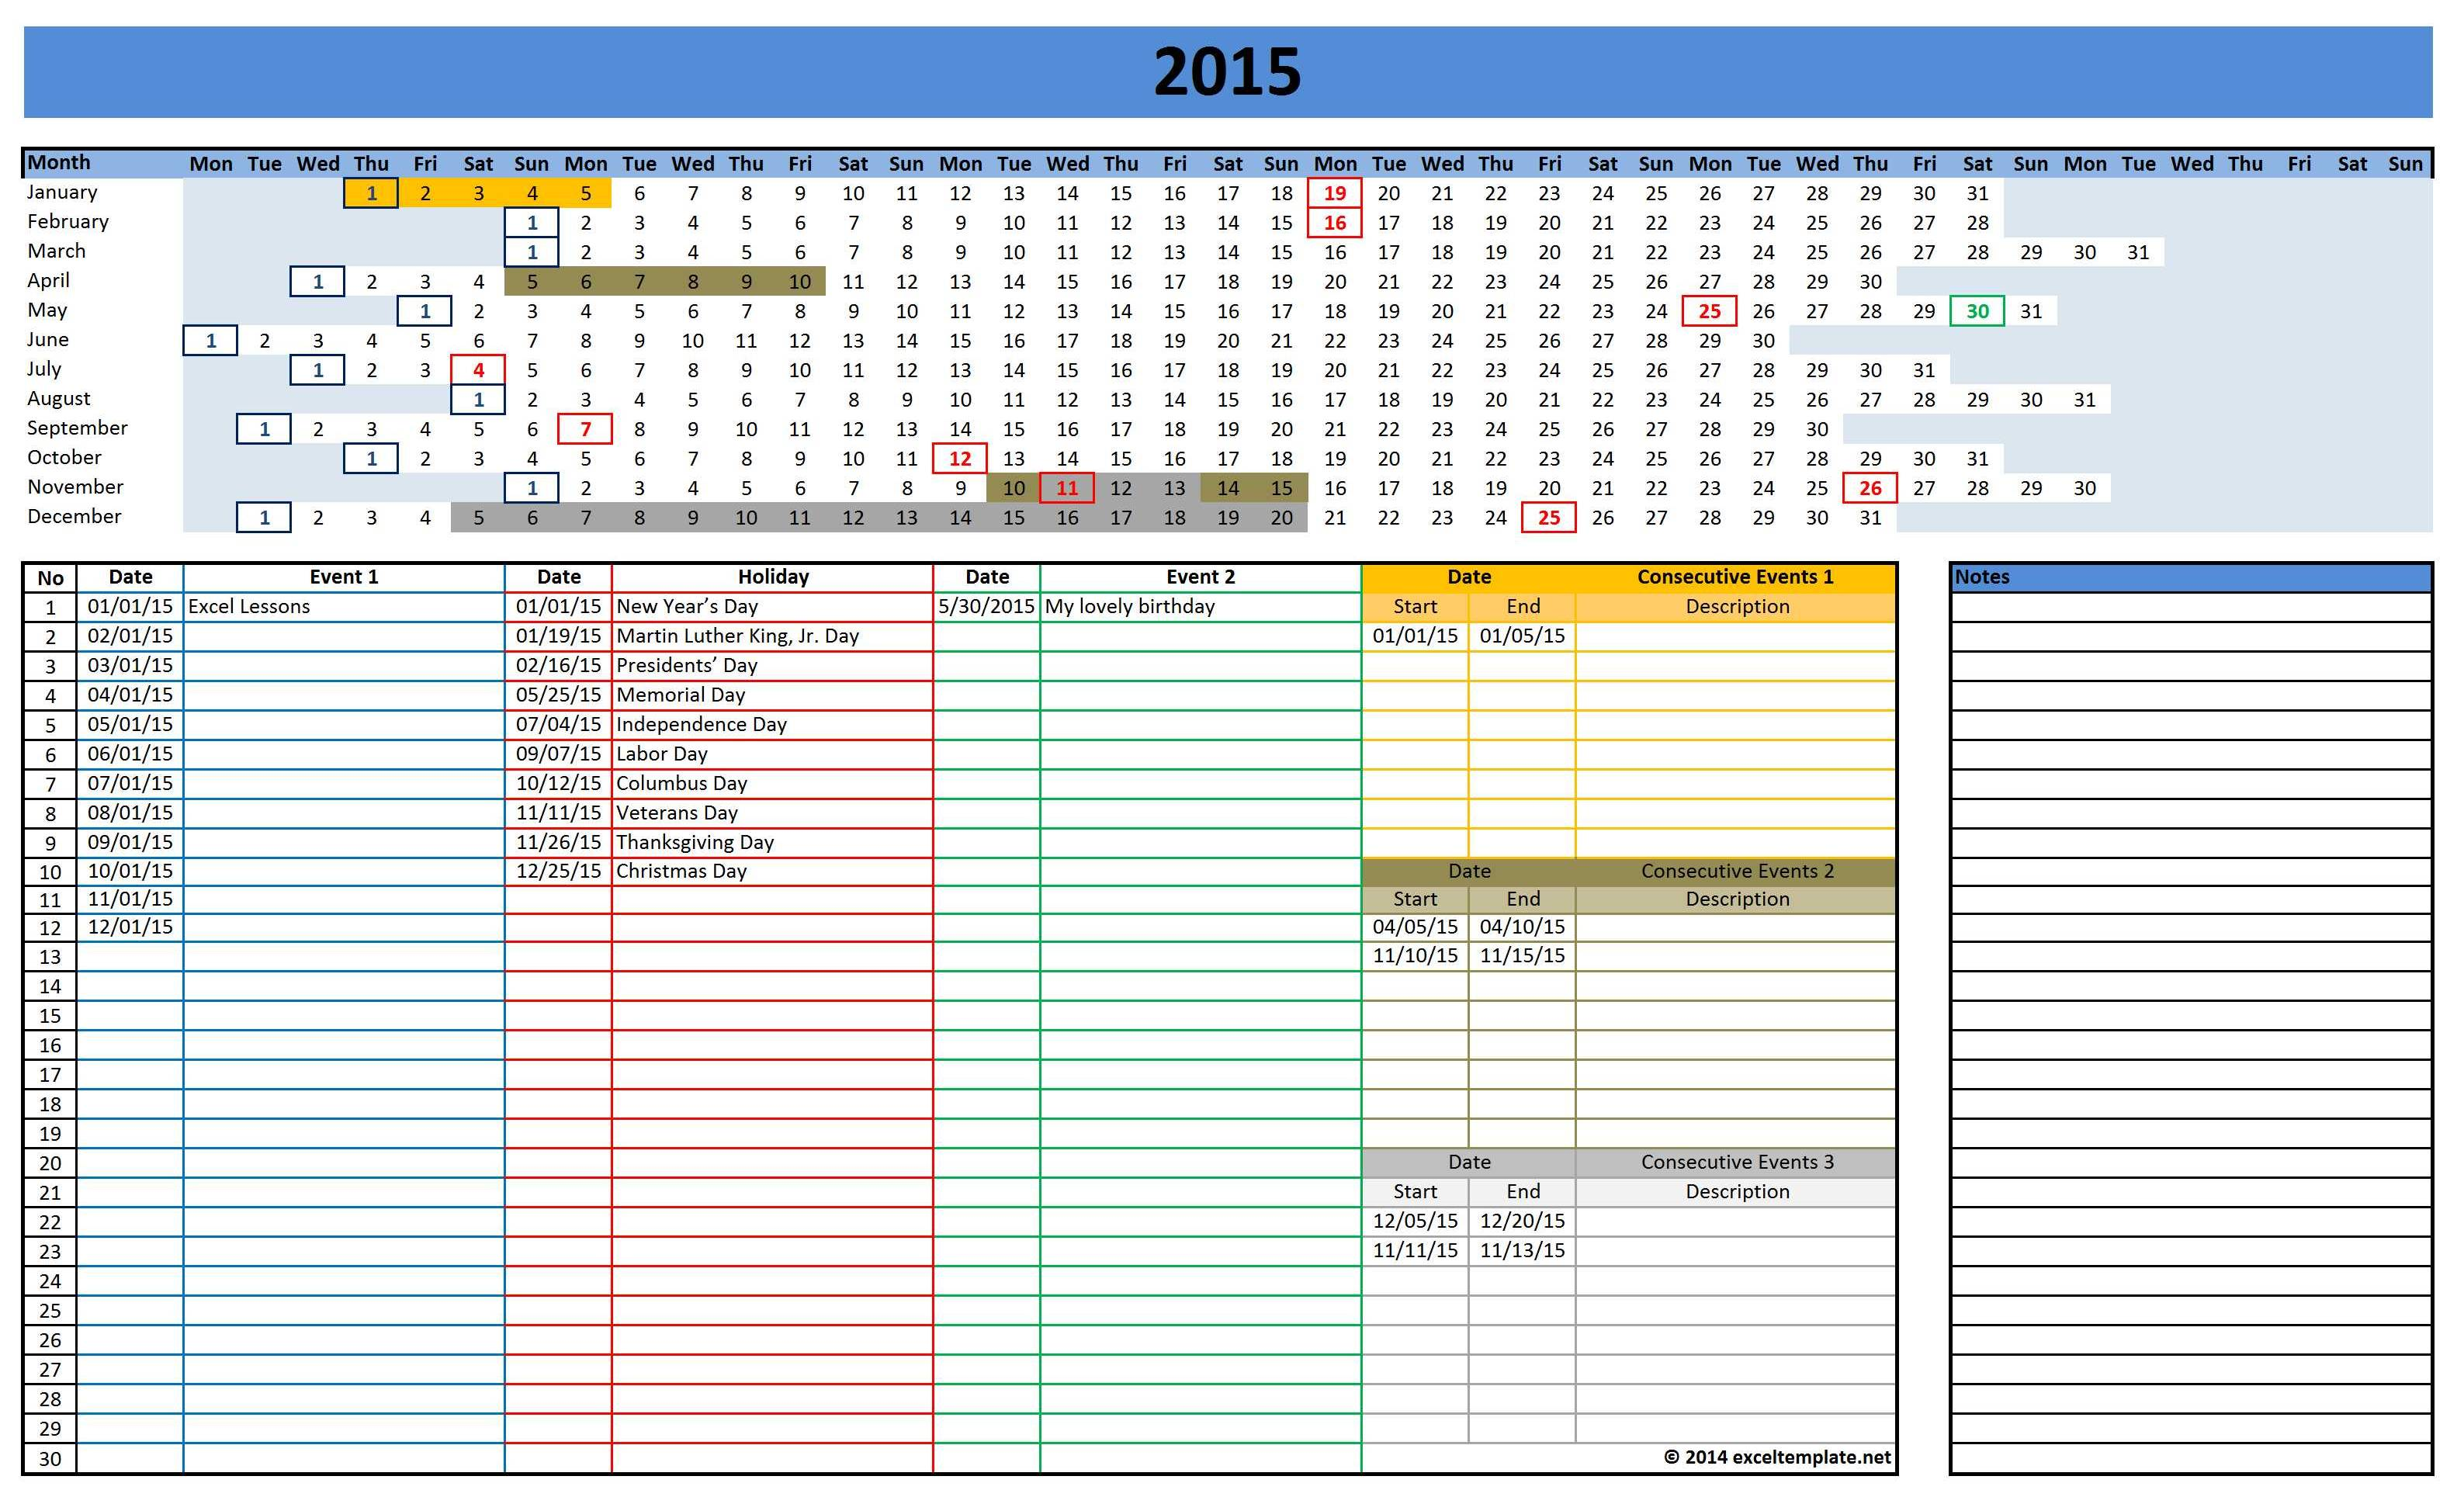 2016 Calendar Linear V1.0 - 3 Rows (84.5 KiB, 2,998 hits)